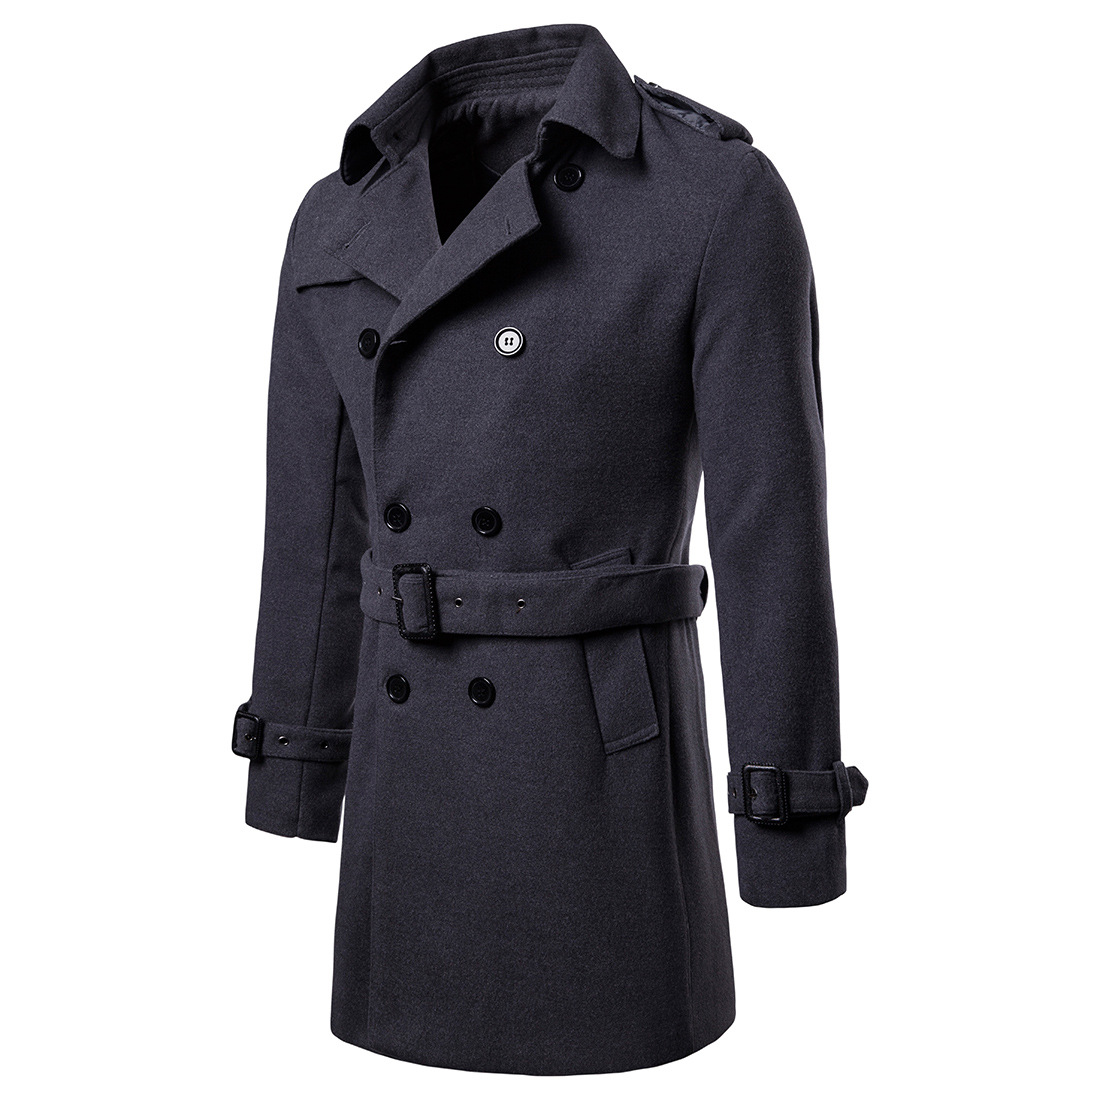 c0c368e66 2018 Winter Plus Size Men Long Trench Coat Double Breasted Long Sleeve  Casual Business Belted Wool Coats for Men Overcoats